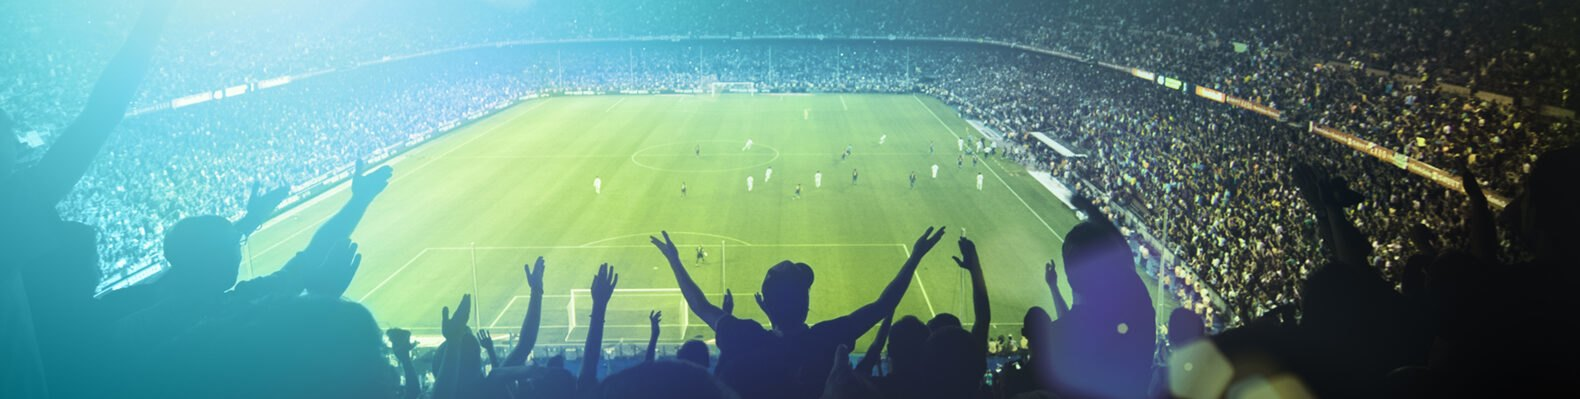 fans cheering in a soccer stadium